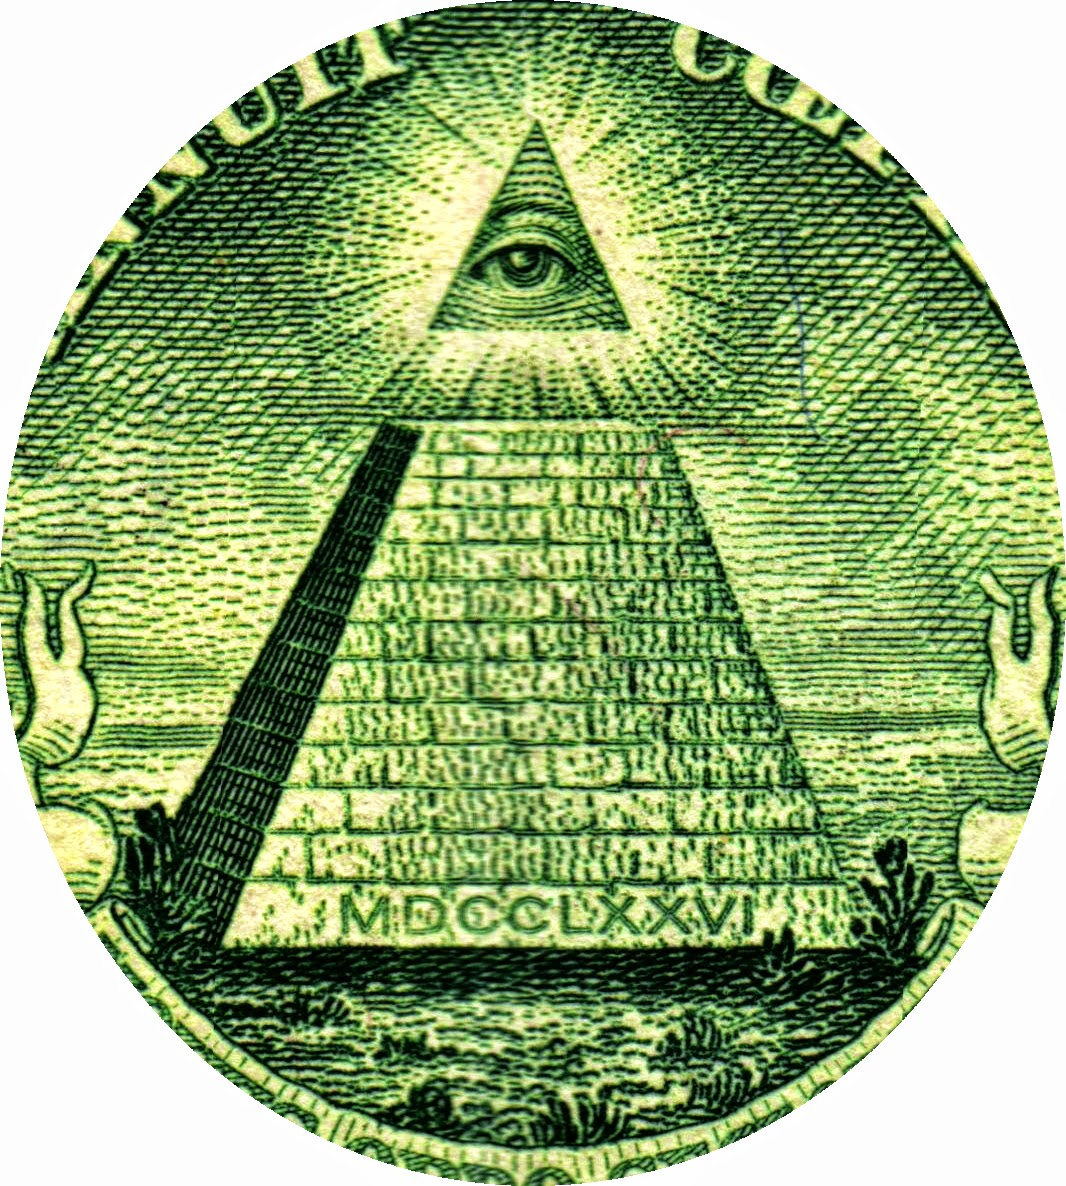 Exposing deception chris tomlin gospel singer is a freemason so what freemasons do to show they worship the satanic masonic god biocorpaavc Images